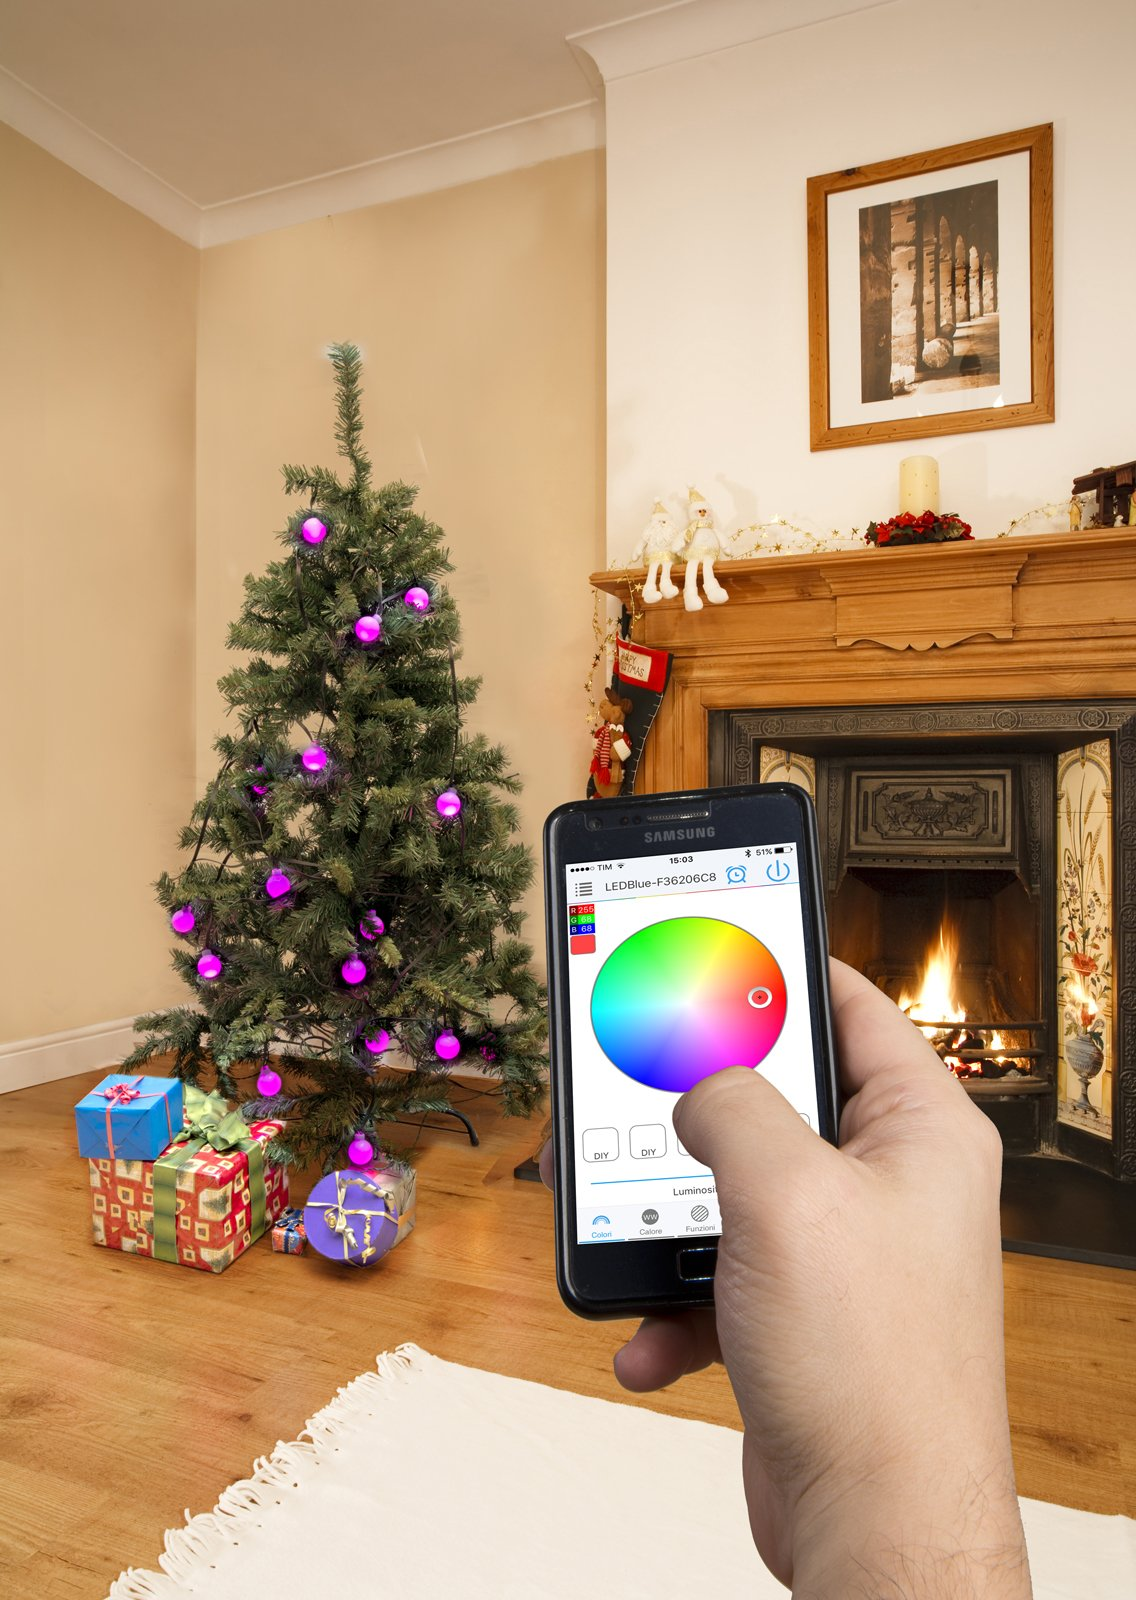 Dmail colorlight ghianda luci co app cose di casa for Dmail natale